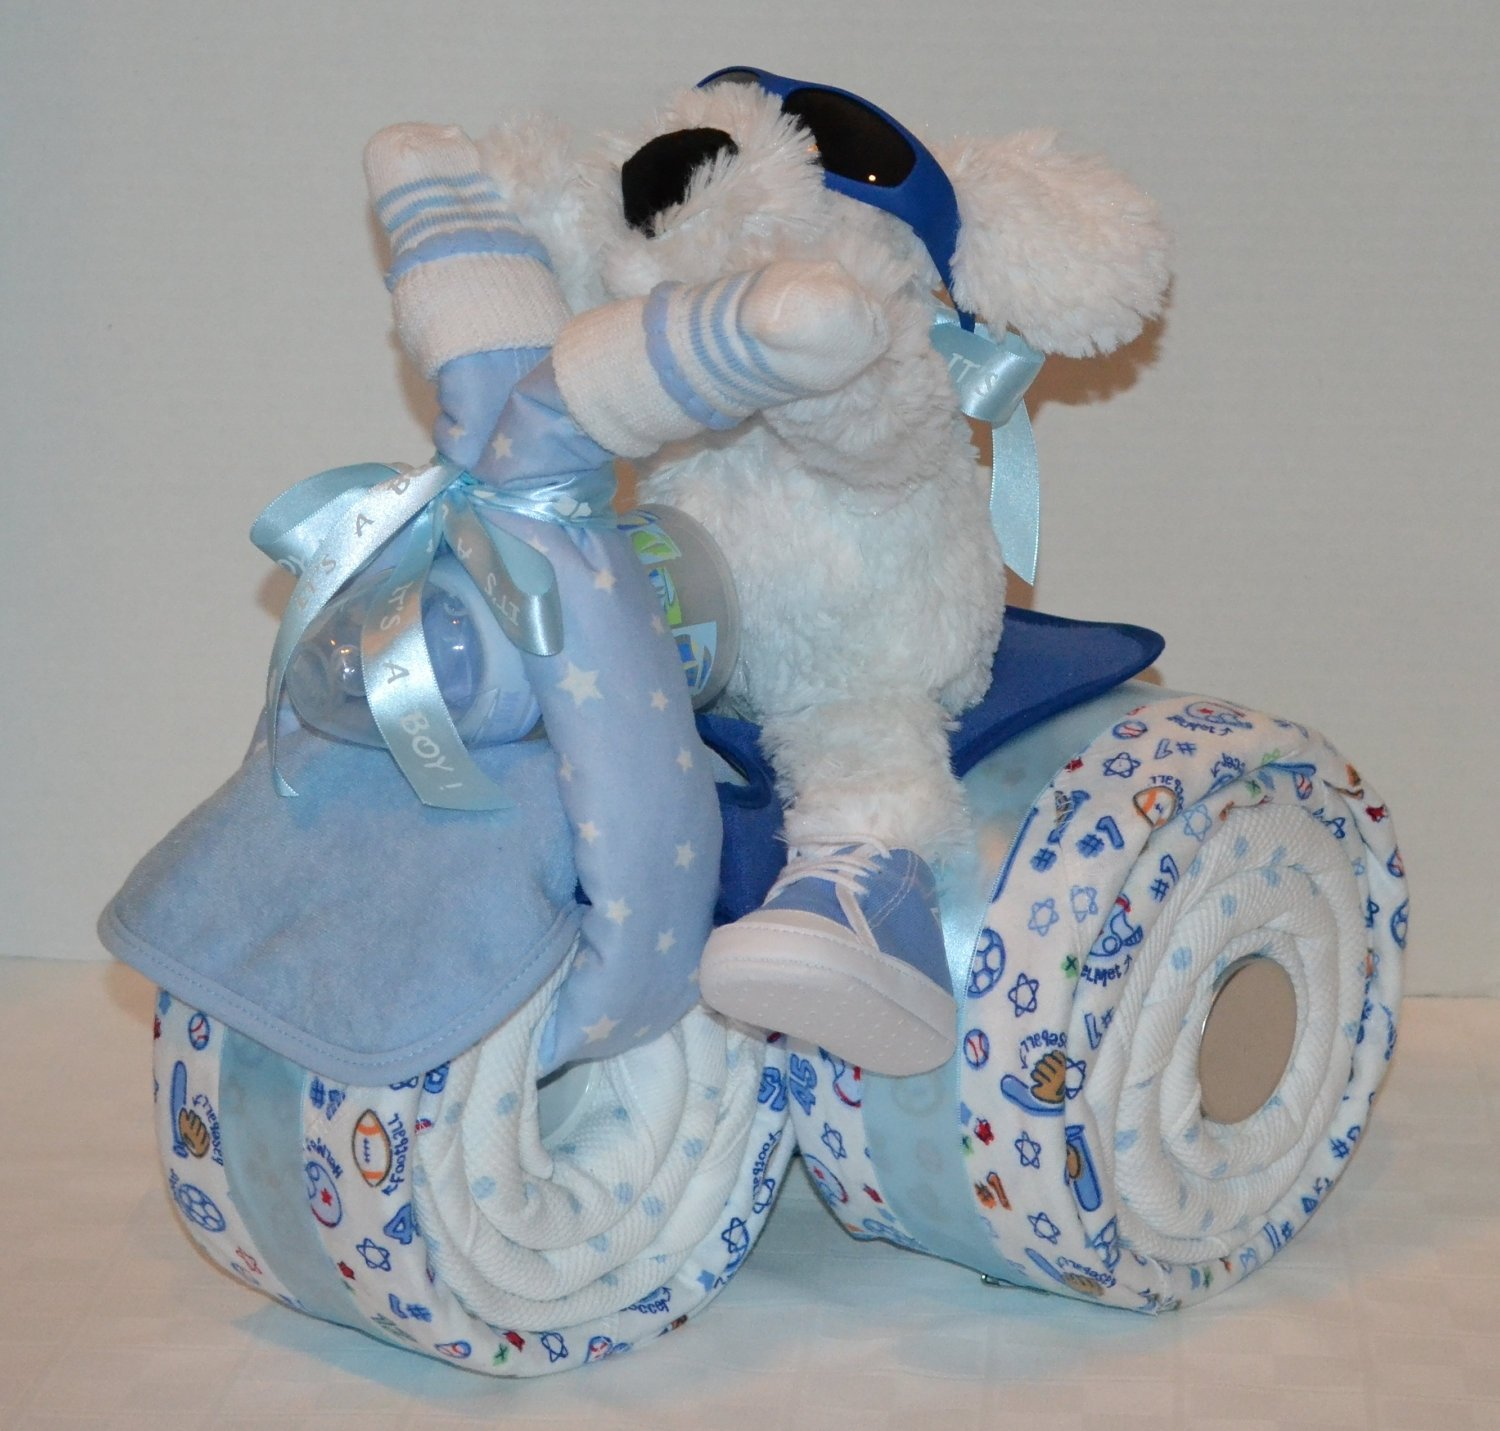 10 Beautiful Boy Baby Shower Gift Ideas ideas for baby boy baby shower omega center ideas for baby 2 2021